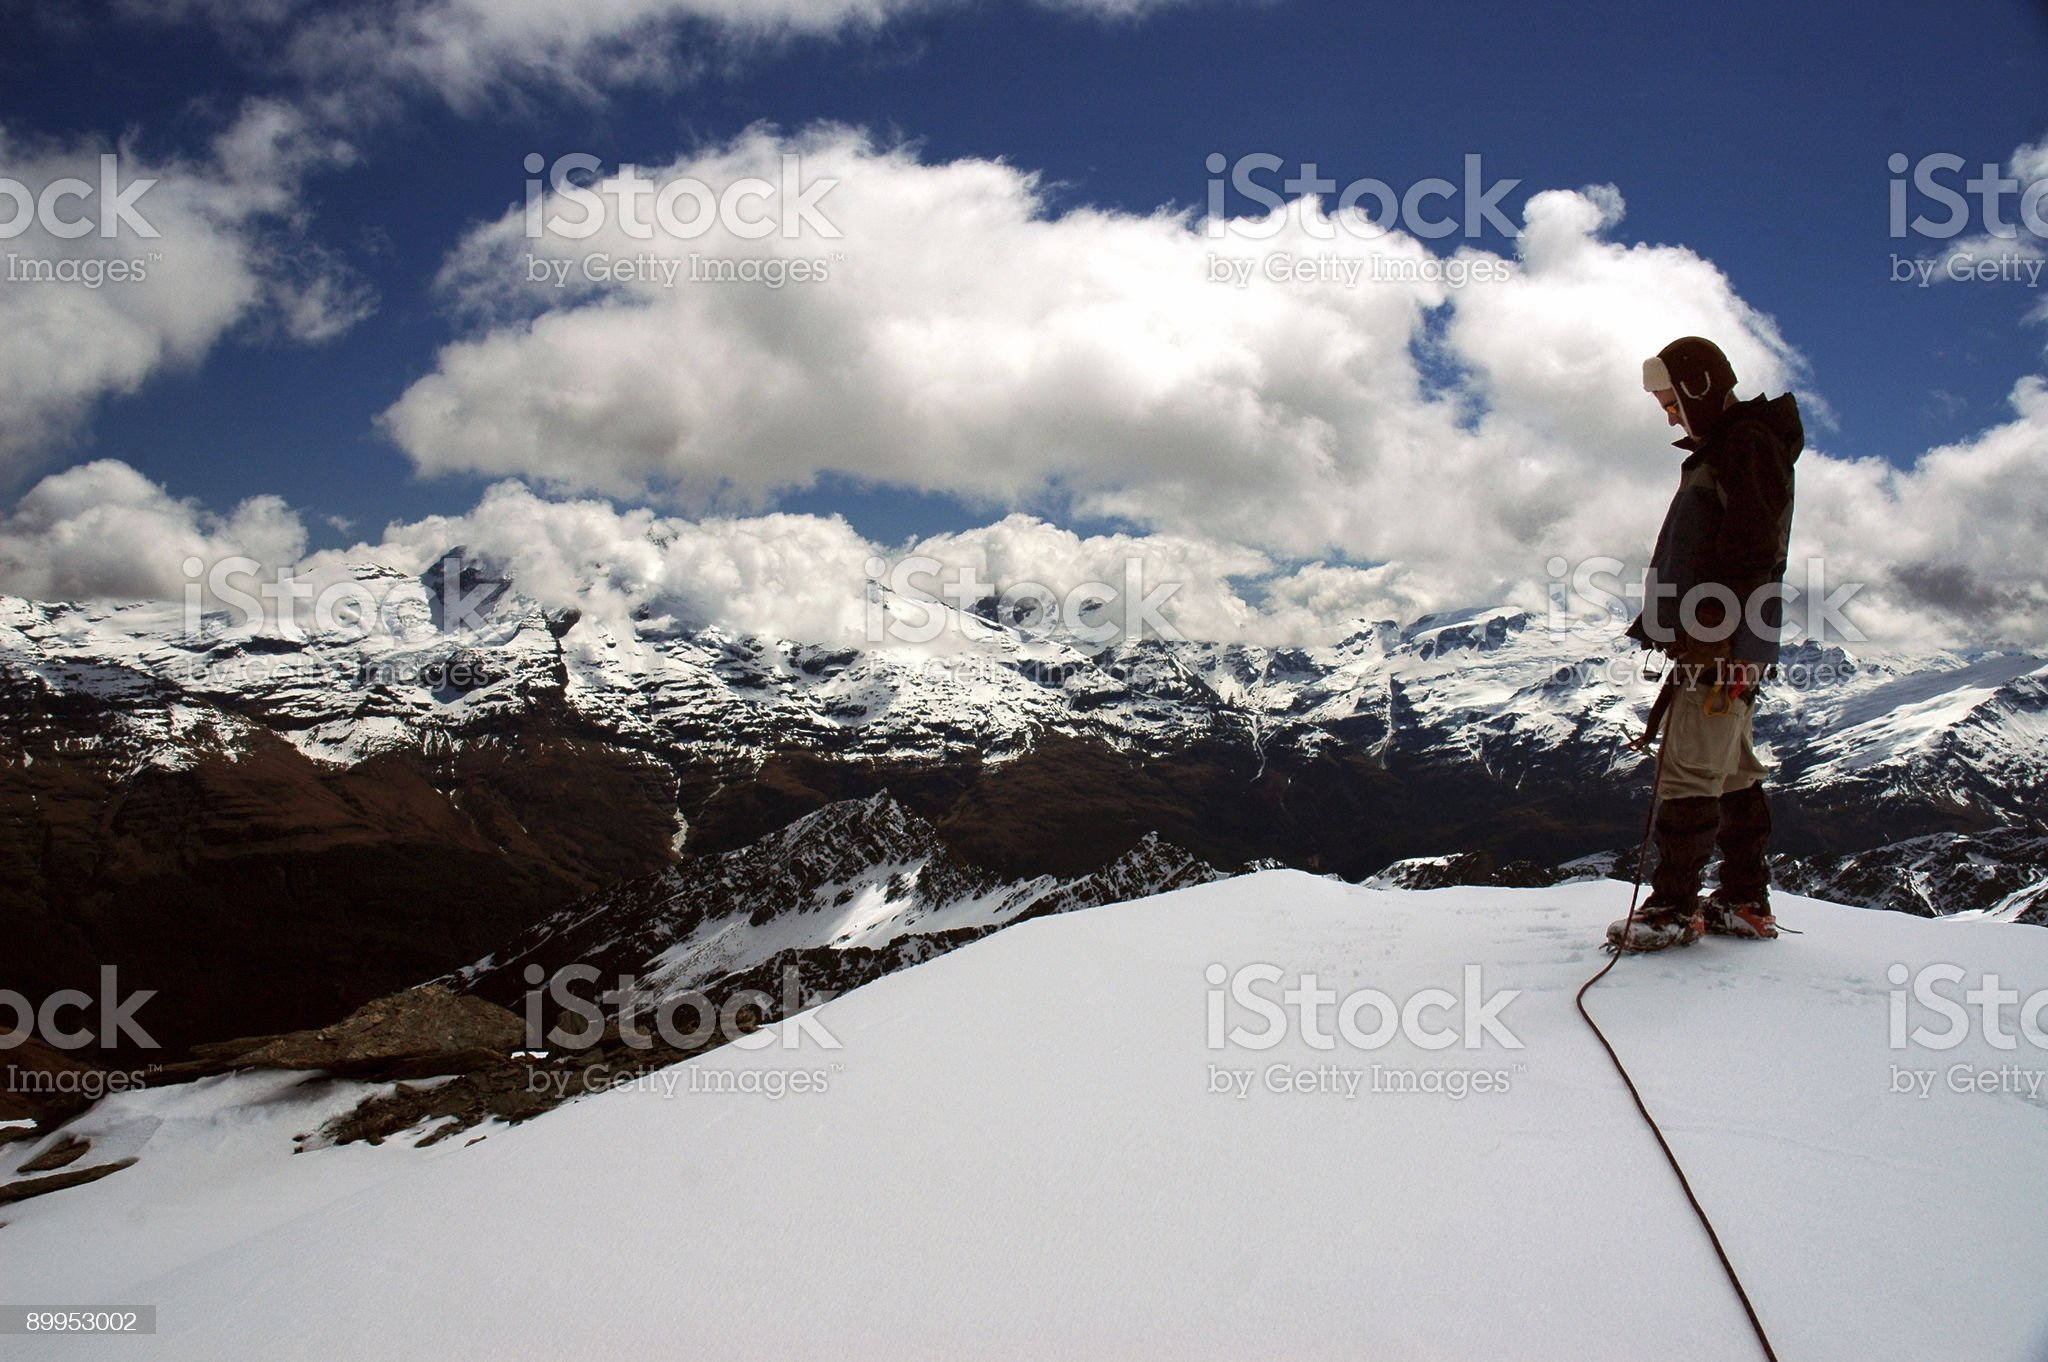 Looking Down on the World royalty-free stock photo